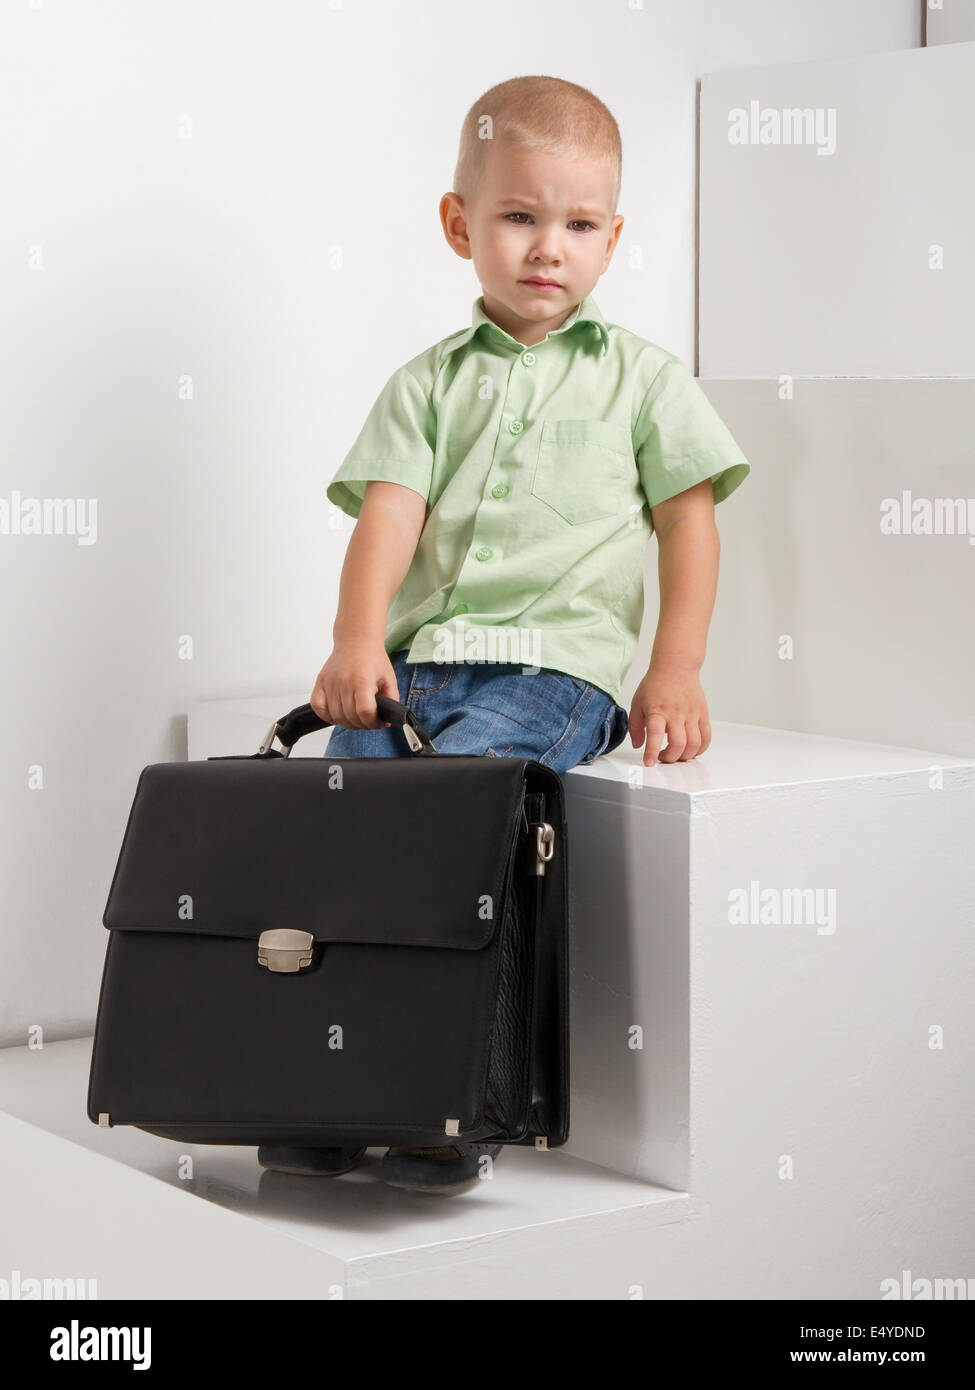 sad kid with briefcase on stairs on light background - Stock Image